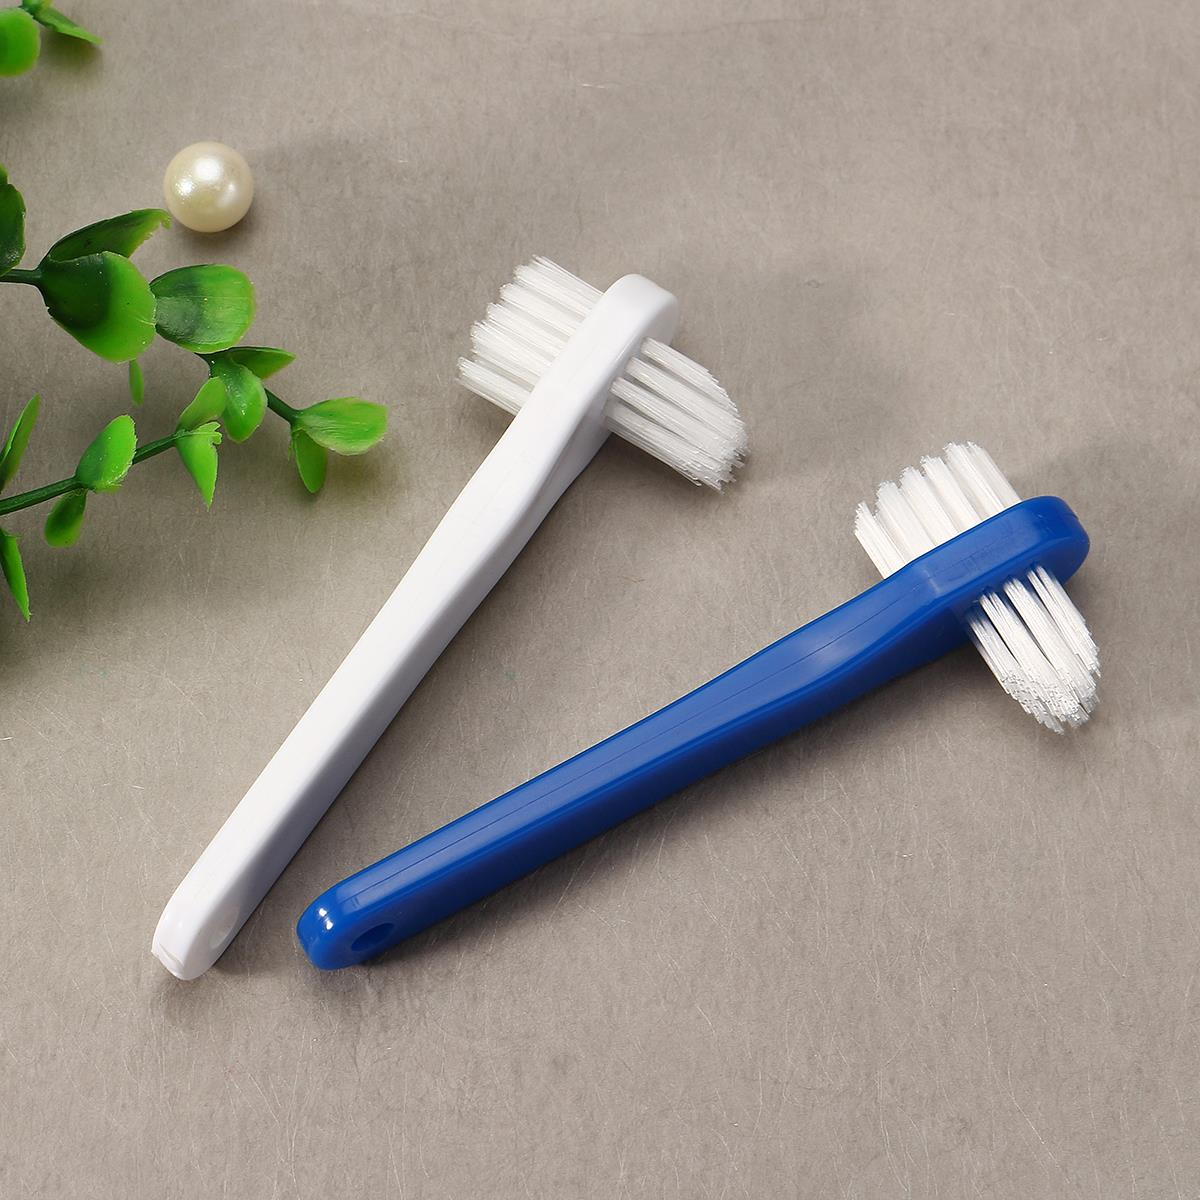 T-shape New Denture Dedicated Brush Toothbrush Dual Heads False Teeth Brushes Gum Cleaner For Men Women 2017 Blue White Color image